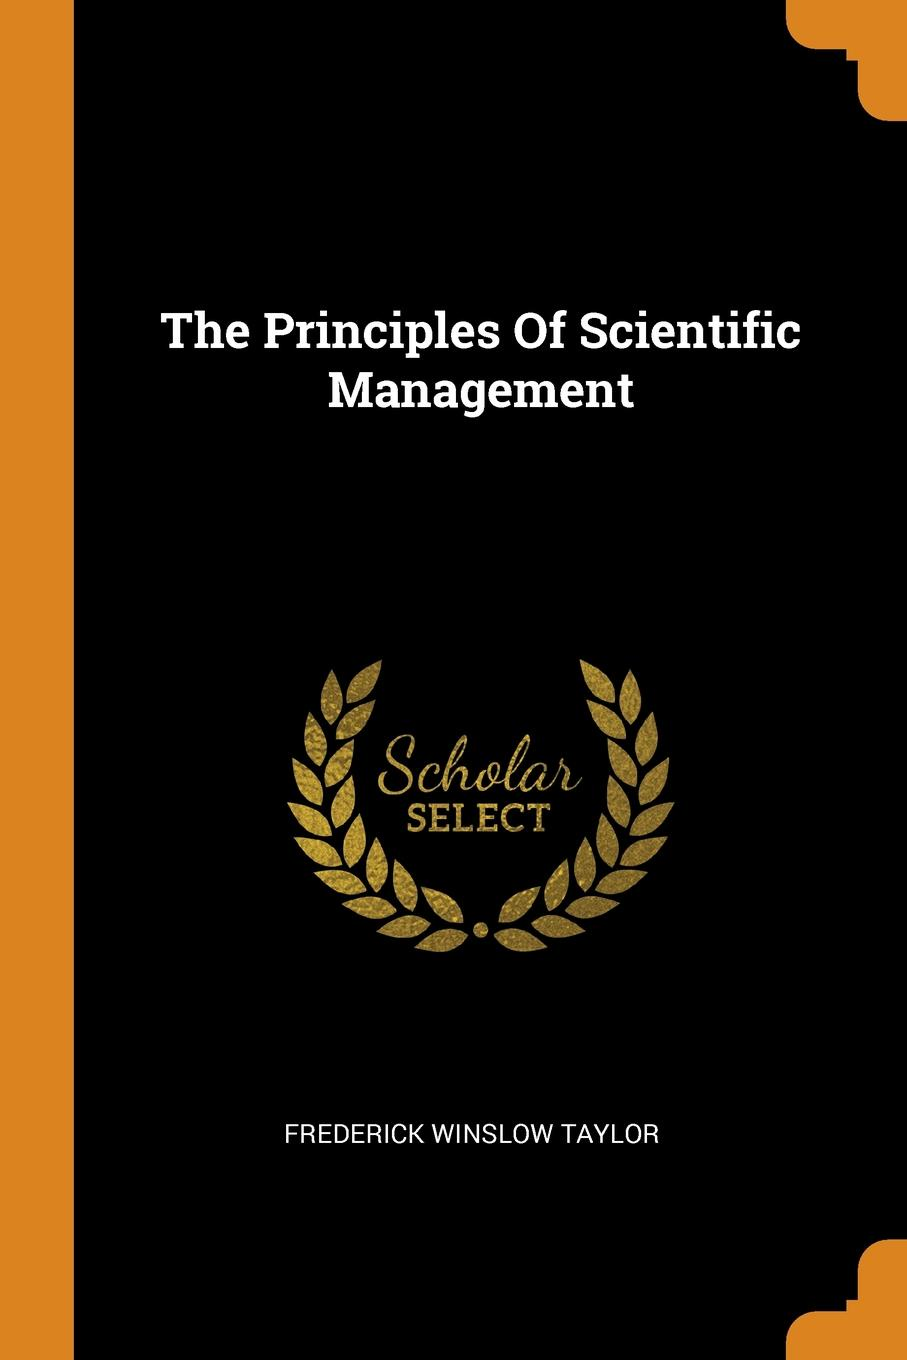 FREDERICK WINSLOW TAYLOR The Principles Of Scientific Management frederick taylor winslow the principles of scientific management